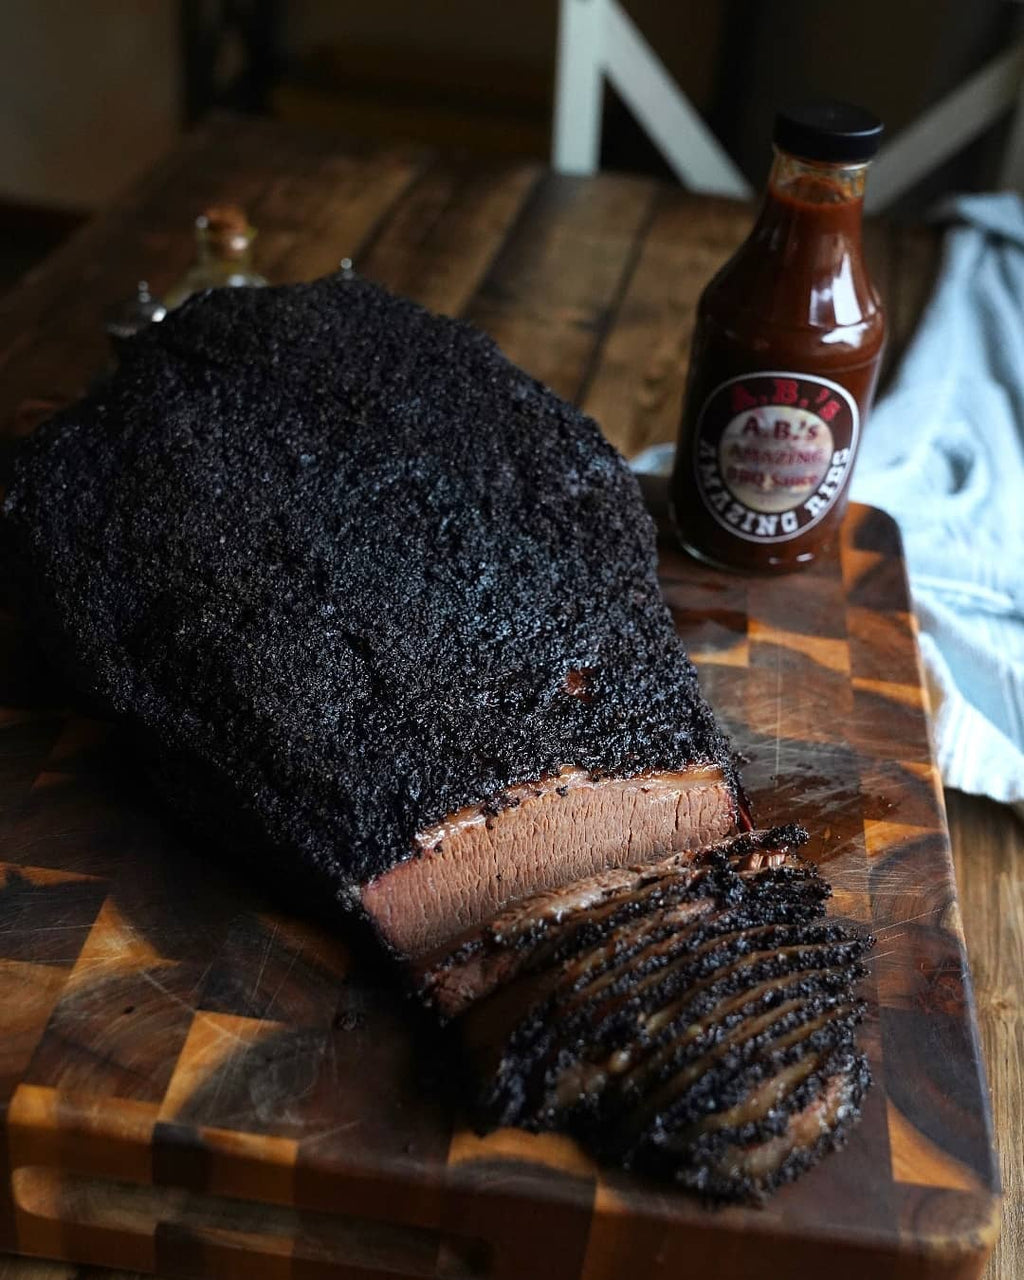 A.B.'s Amazing Chilled Brisket